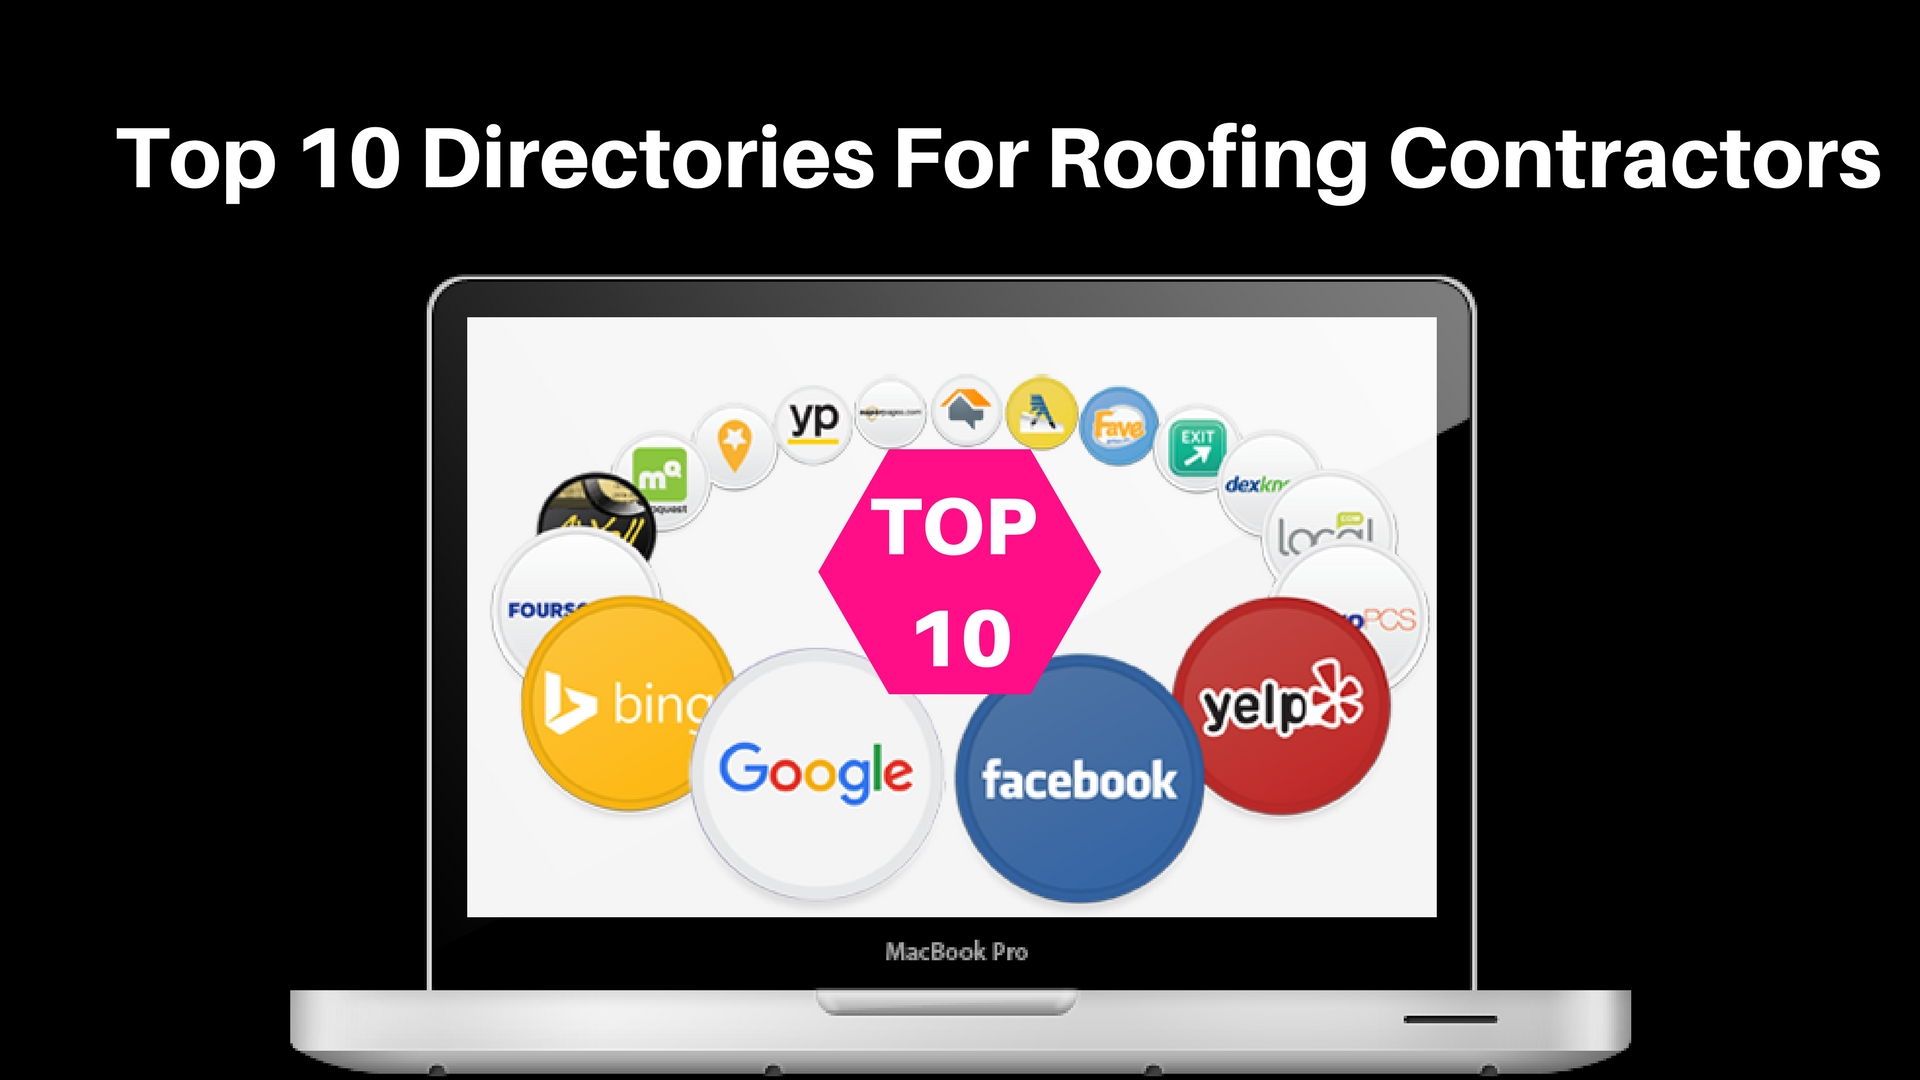 Top Roofing Directories For SEO & Brand Visibility | Roofing